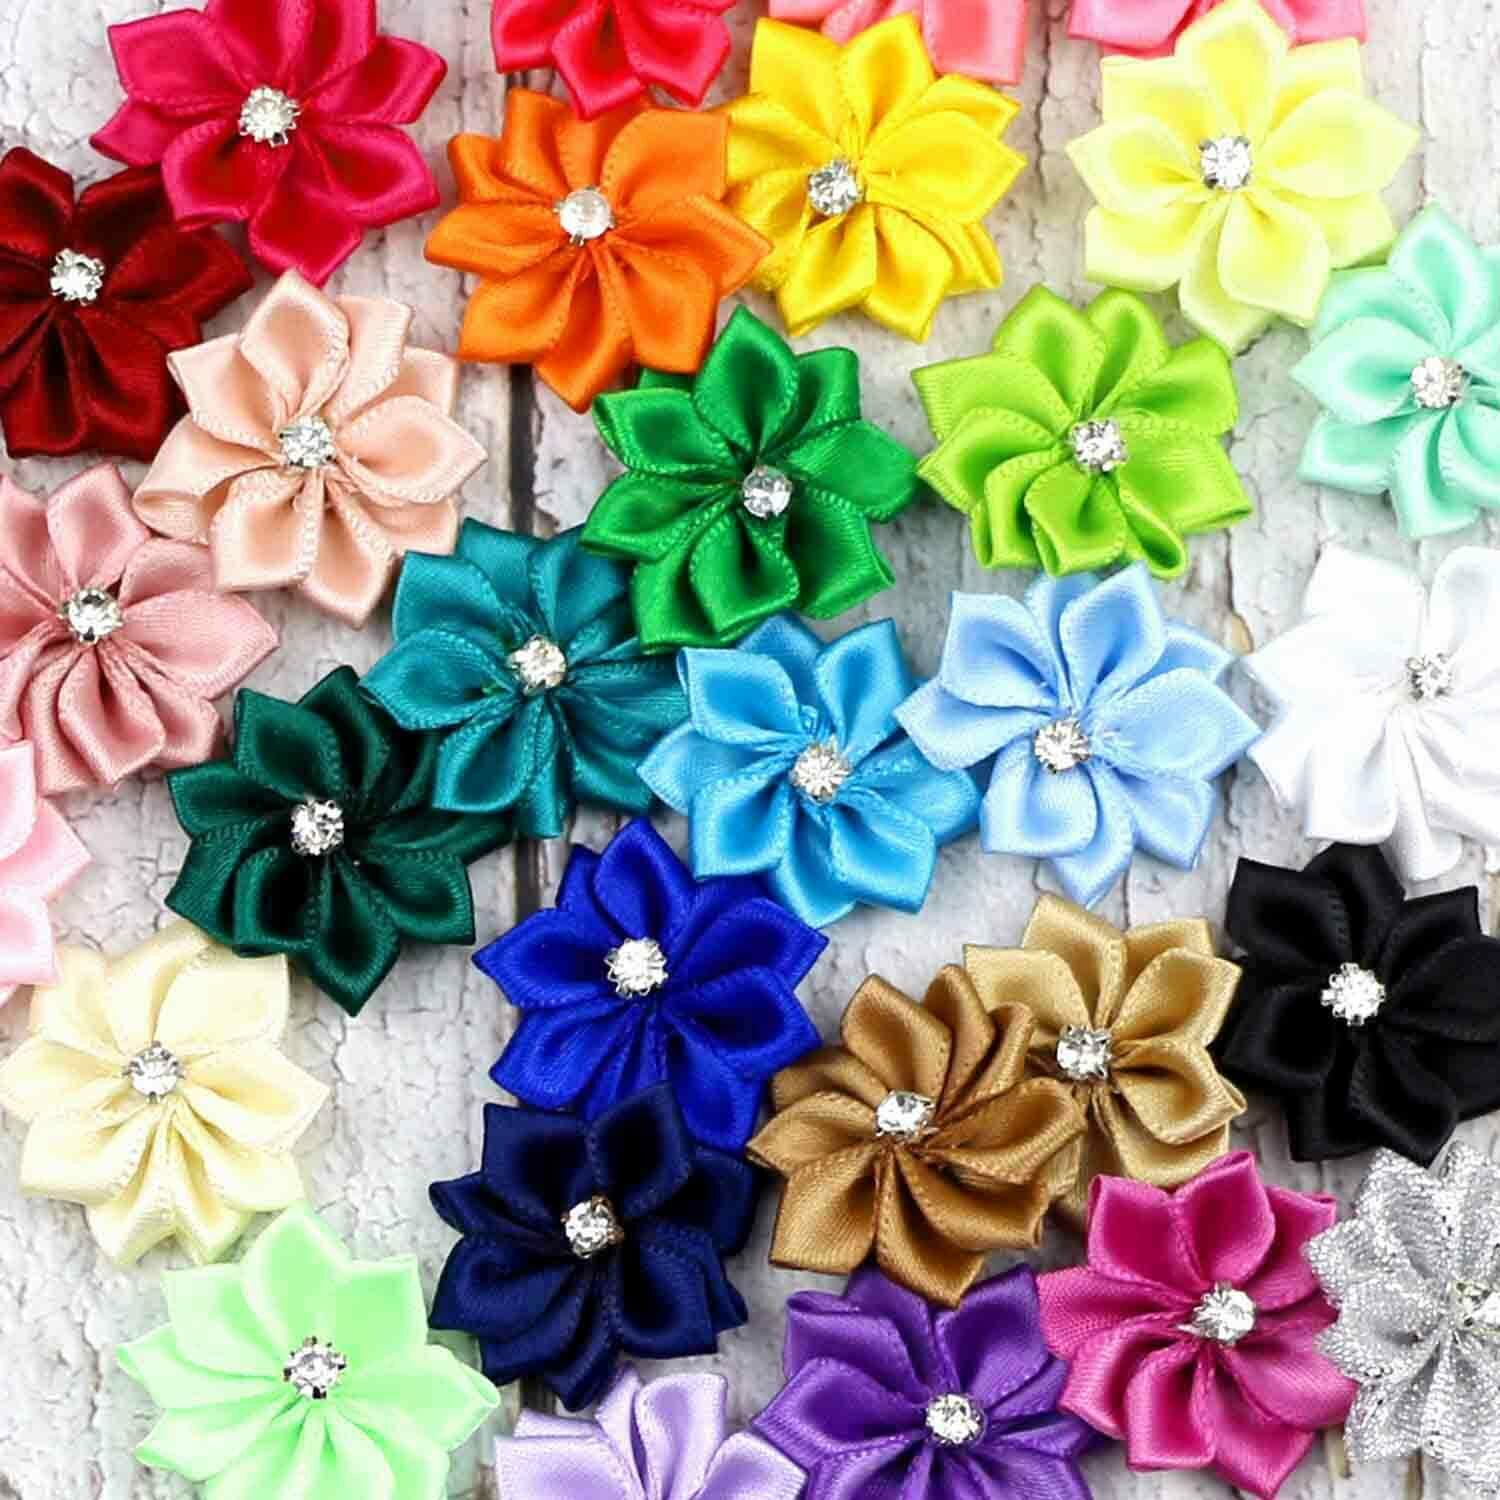 Vosarea 5 Yard JUST FOR YOU Silk Ribbon DIY Gift Ribbon for Craft Decorative Gift Flowers